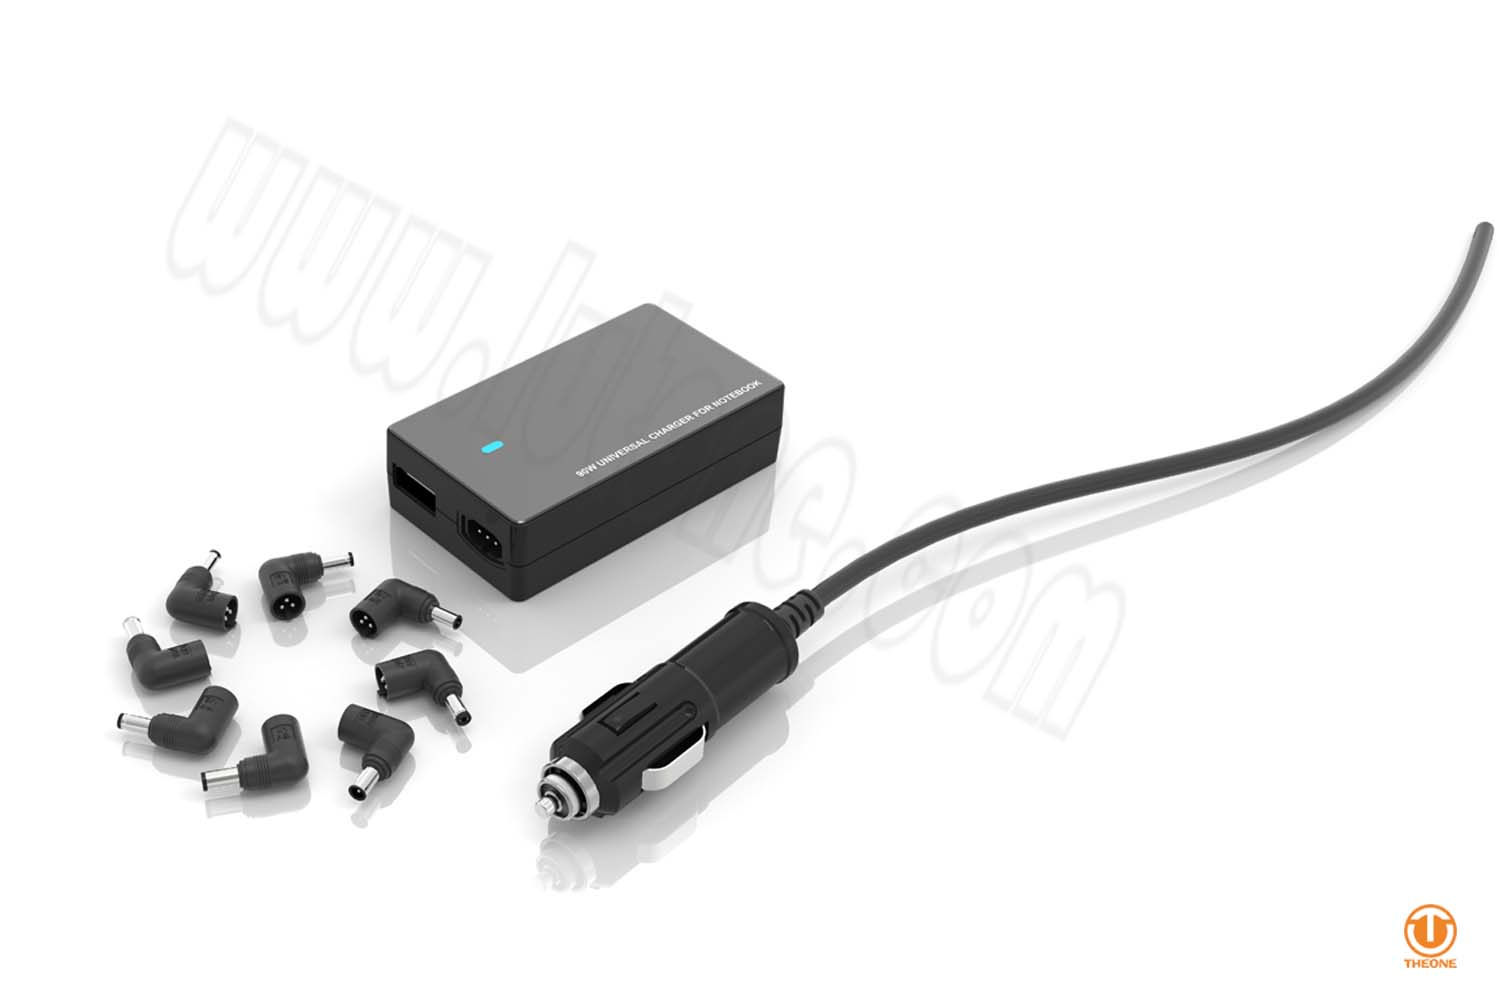 ta09c6-2 car adapter with usb